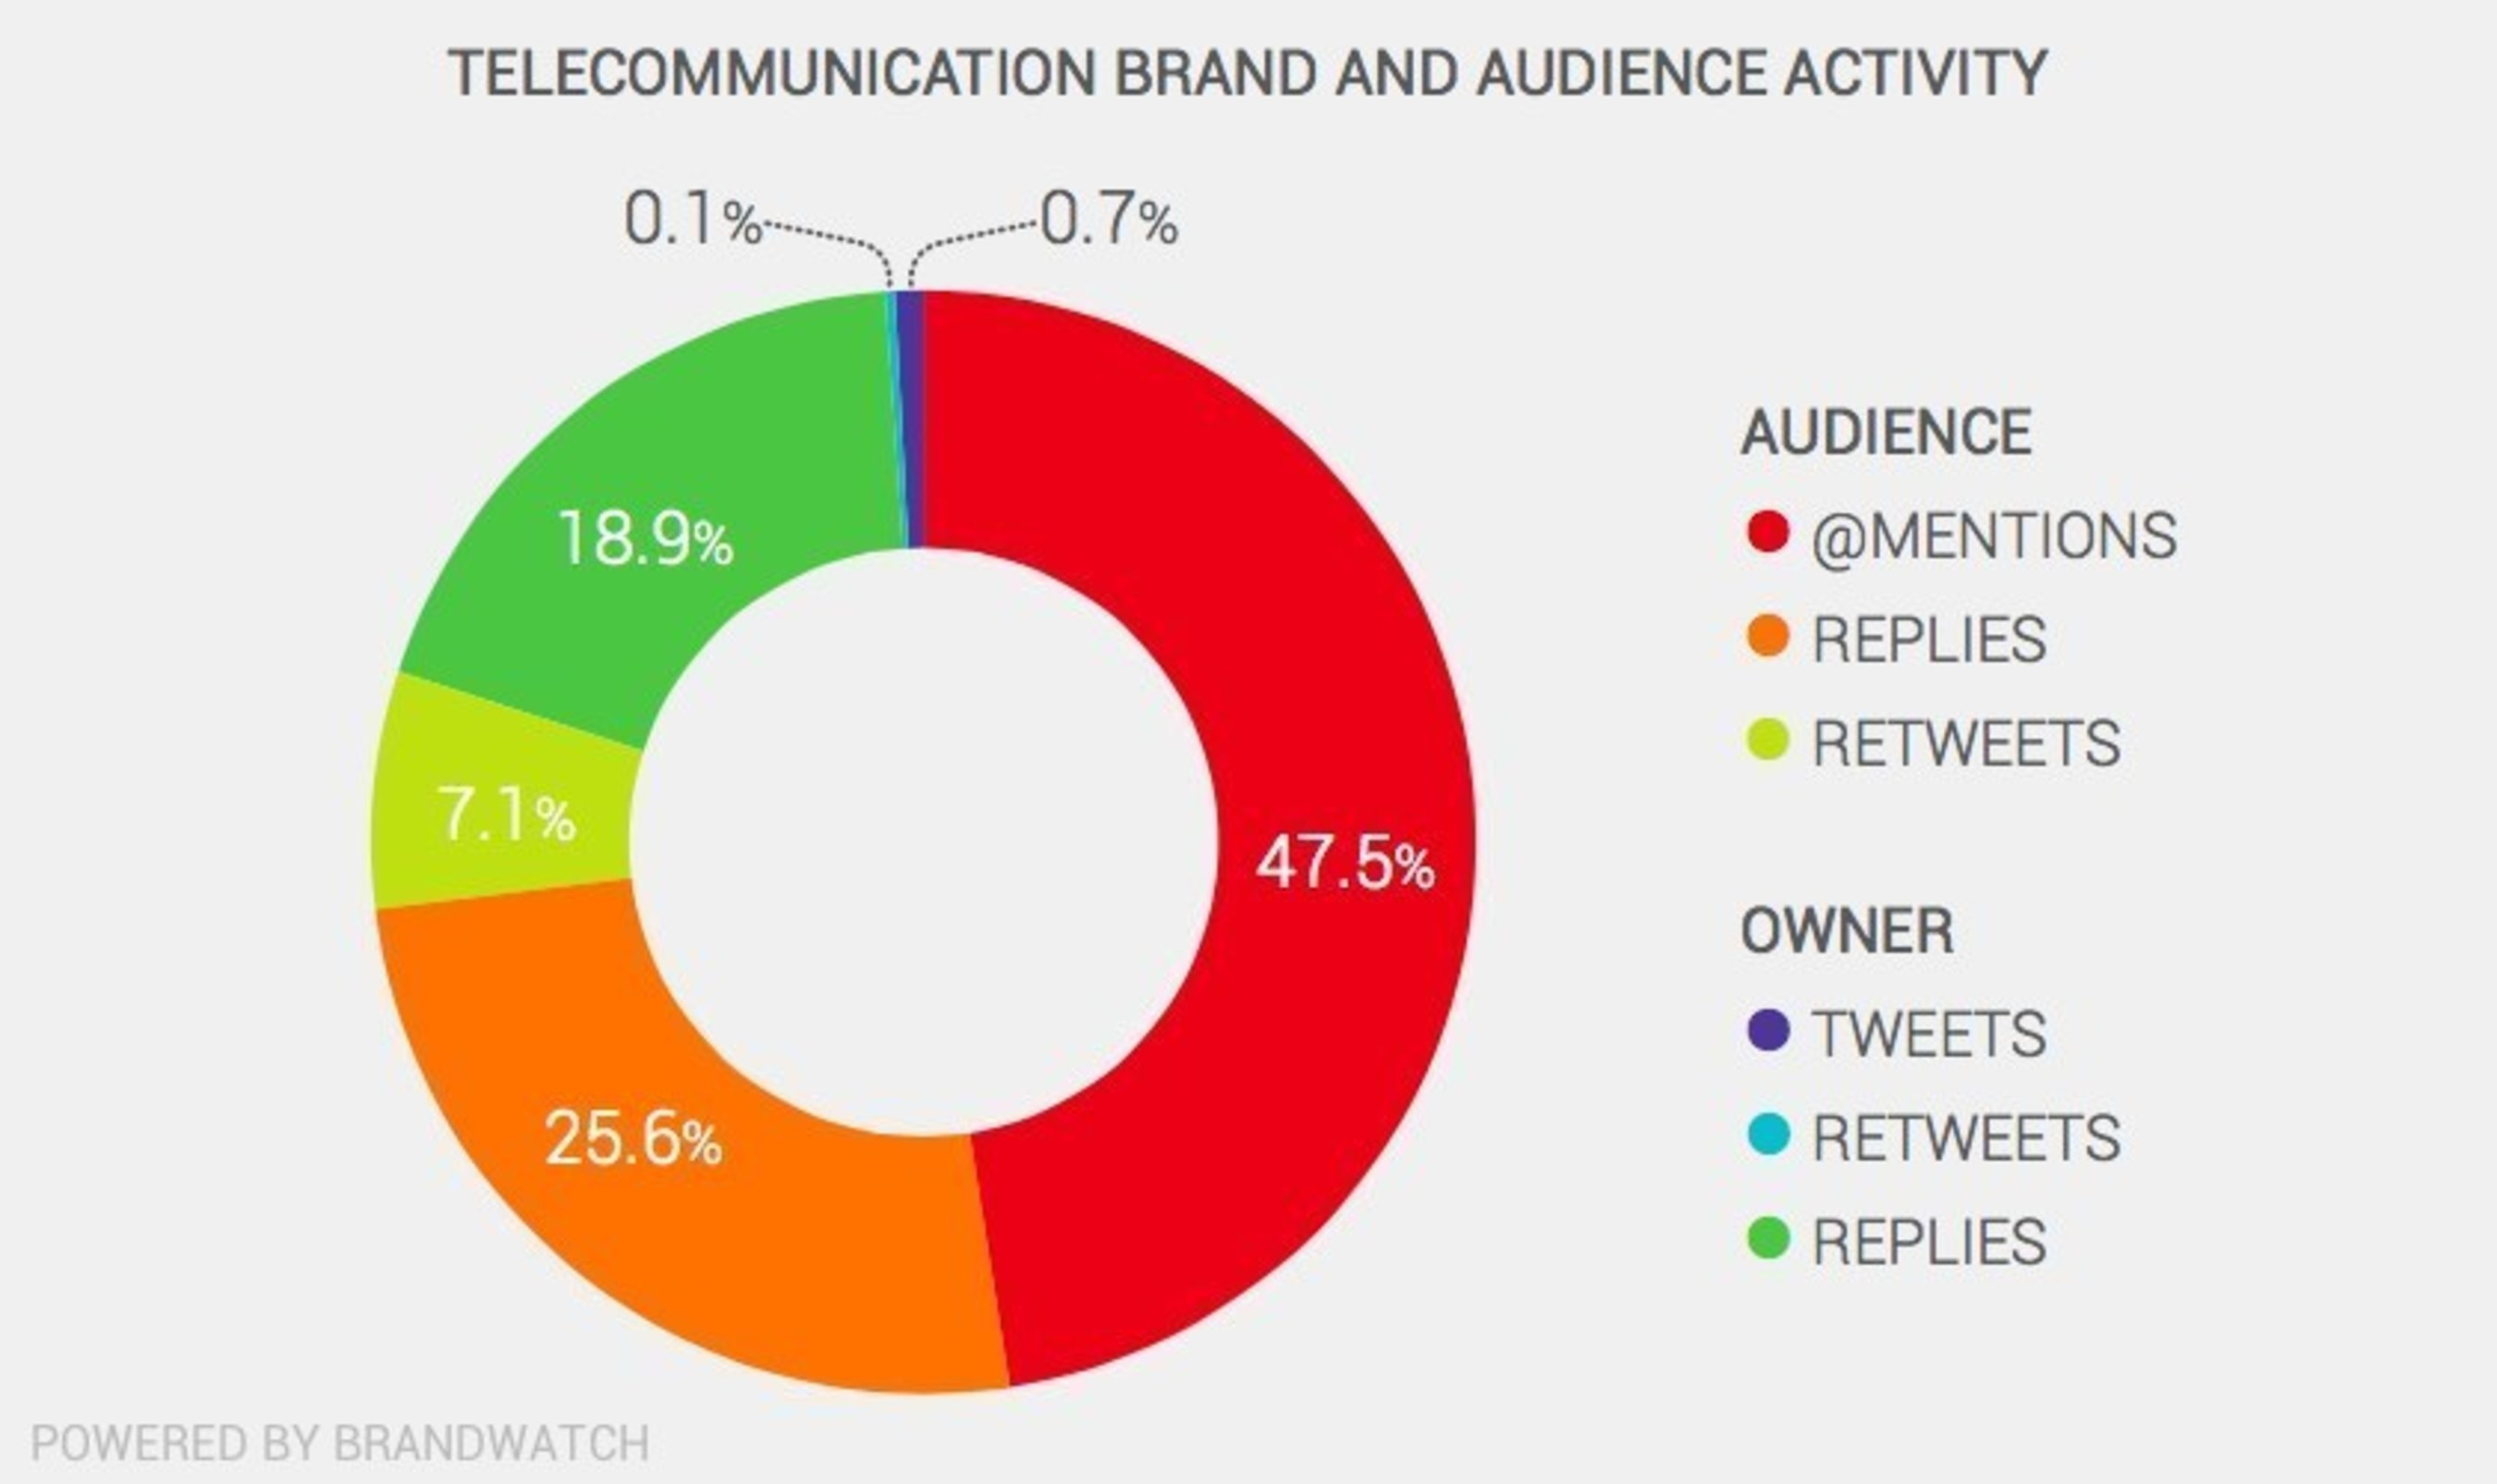 Social activity breakdown for telecommunication brands and audience, from the Brandwatch Telecommunications ...